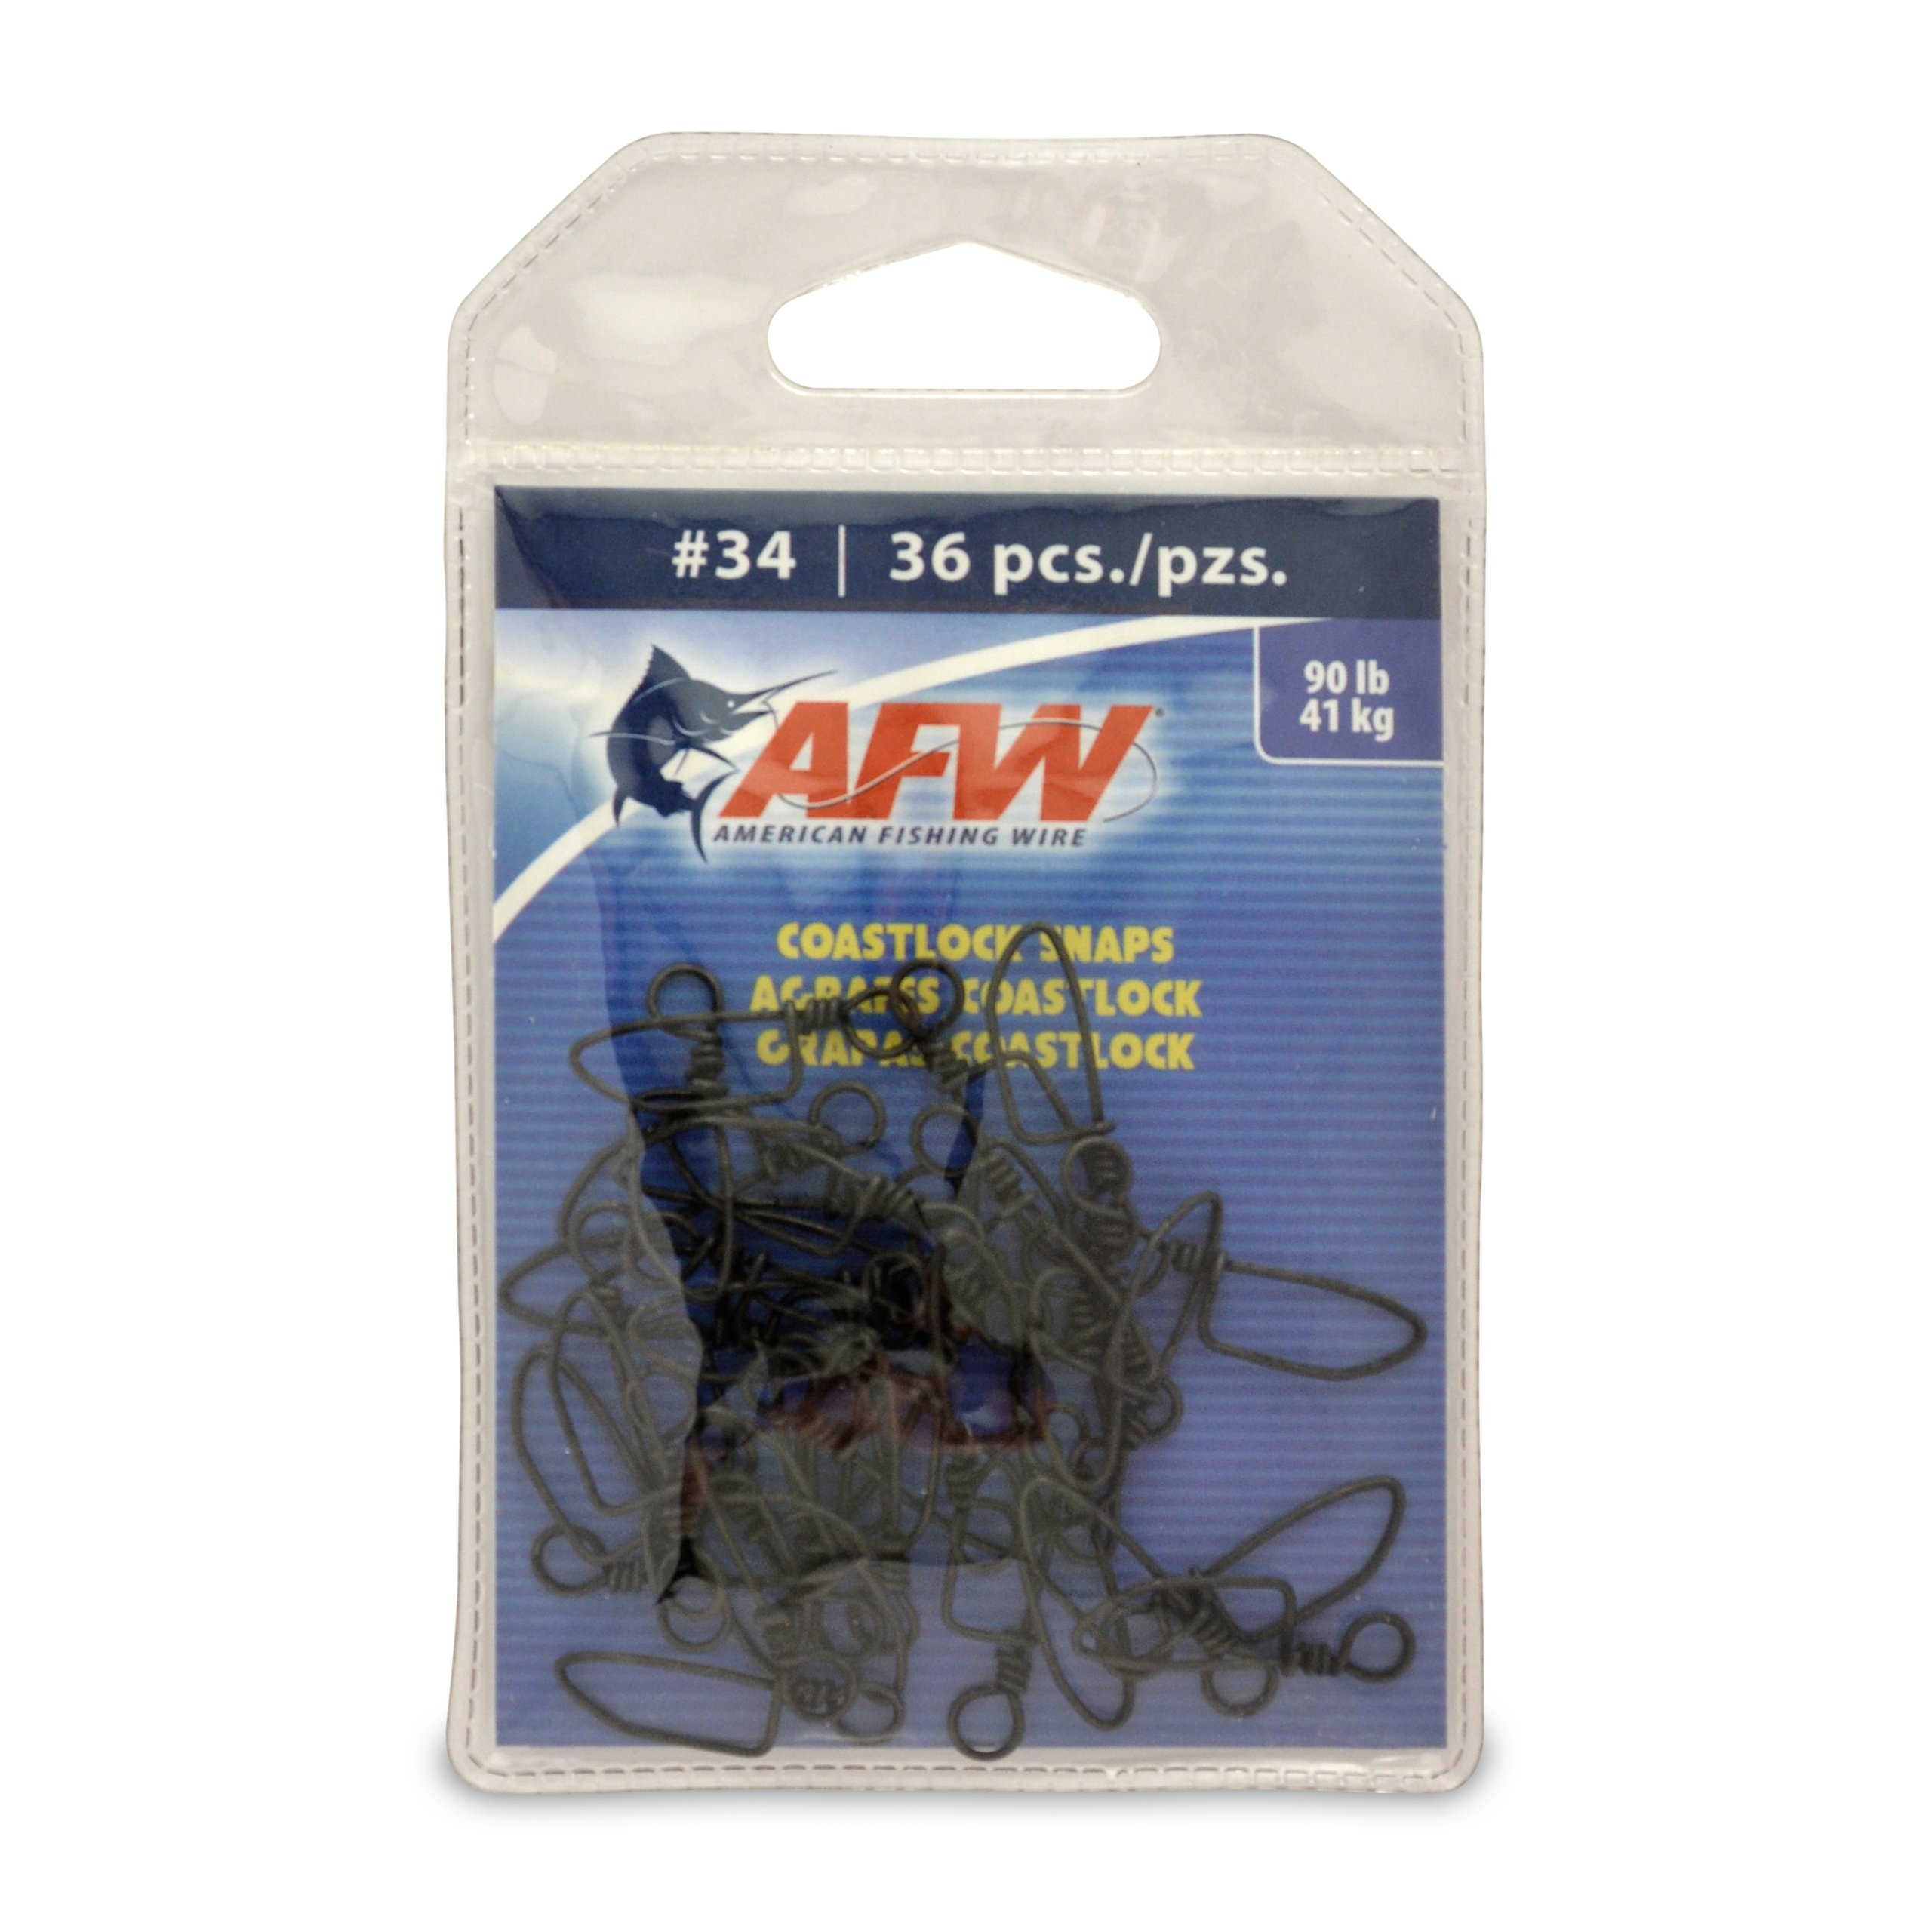 American Fishing Wire Brass Coastlock Snaps, Black Color, Size 34, 90 Pound Test, 36-Pieces